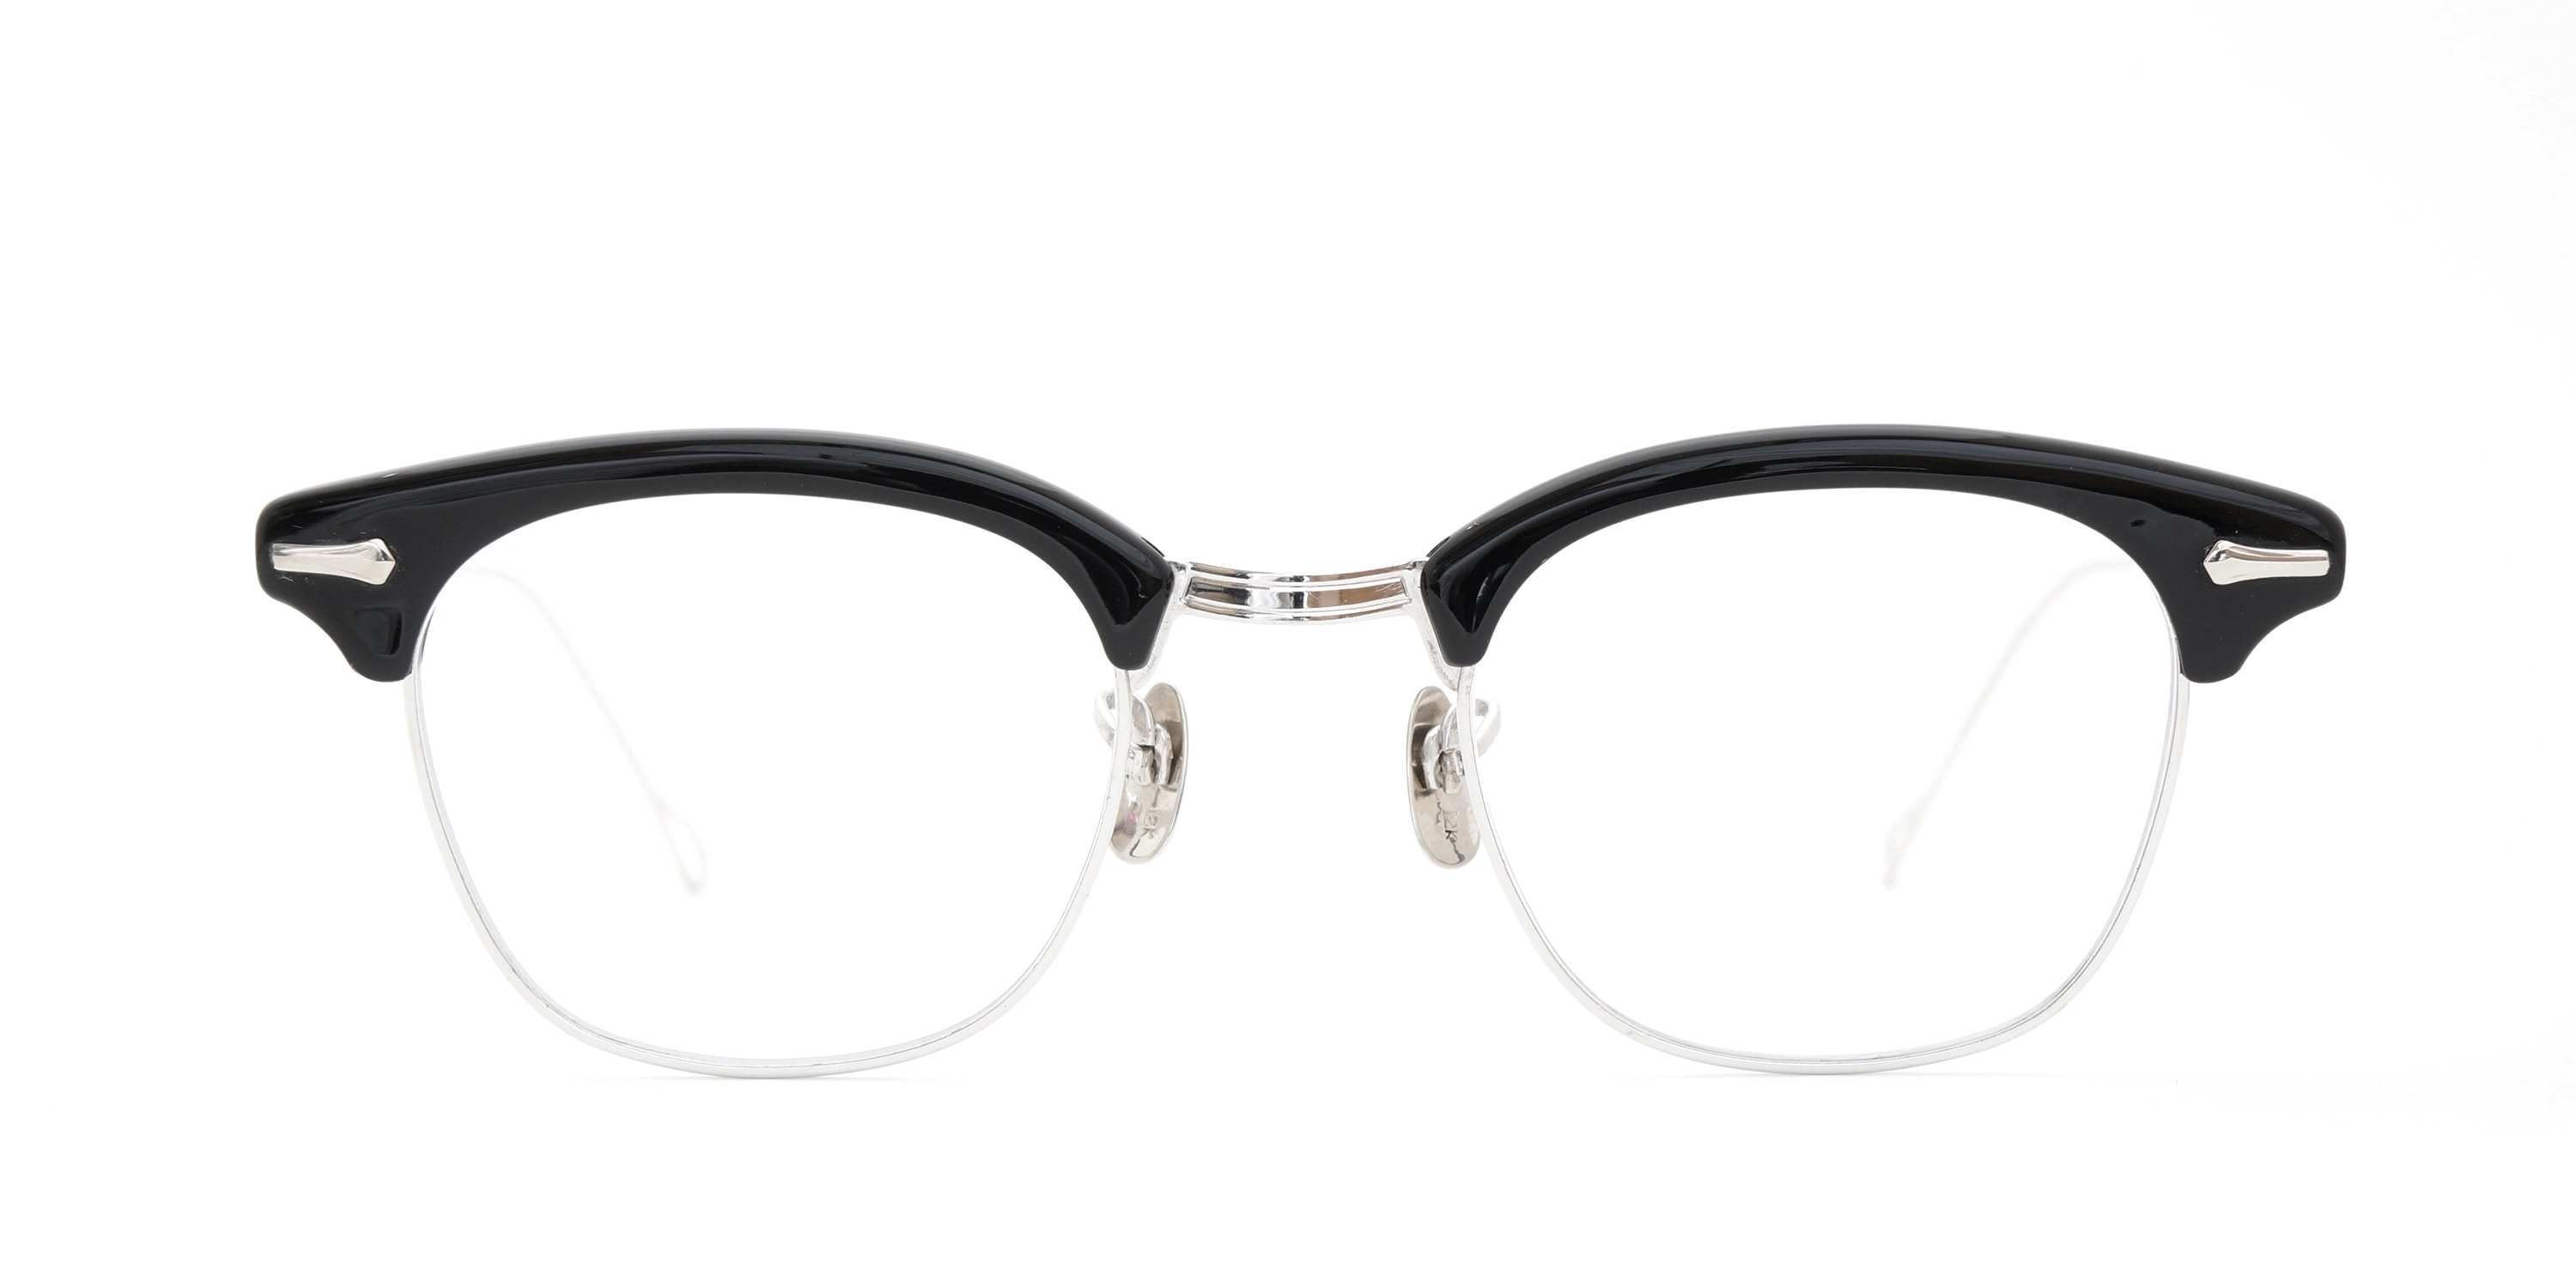 The Spectacle メガネ 1950s-1960s SHURON RONSIR GF-Temple Black WG 1/10 12KGF 46/22 イメージ2